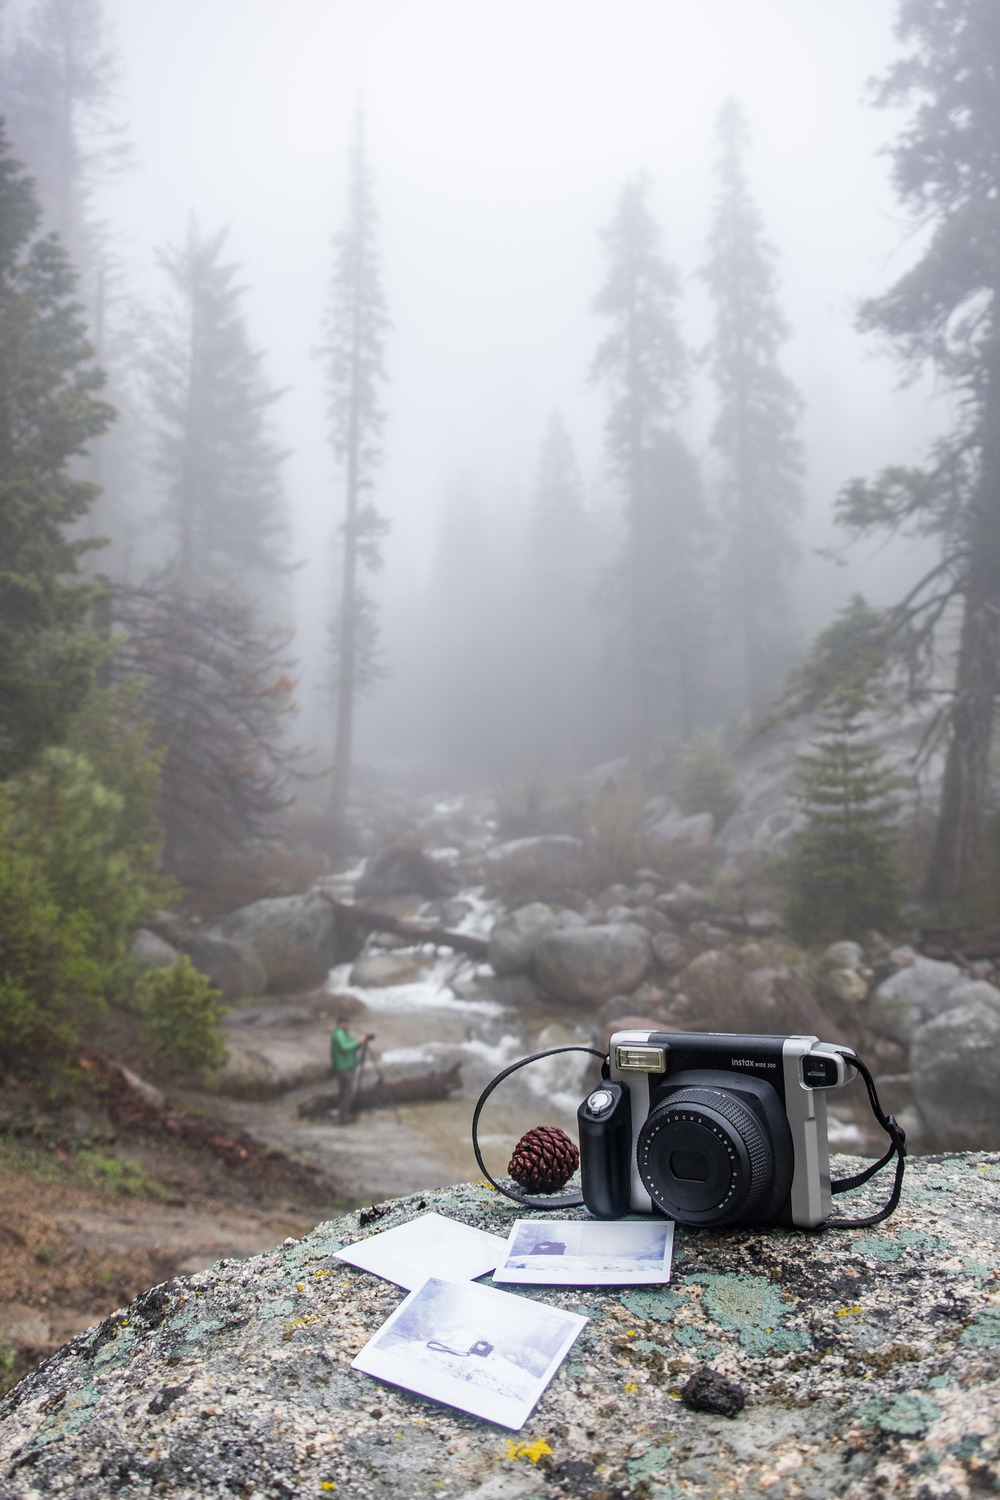 Instax captures a moody scene in Sequoia National Park in California.